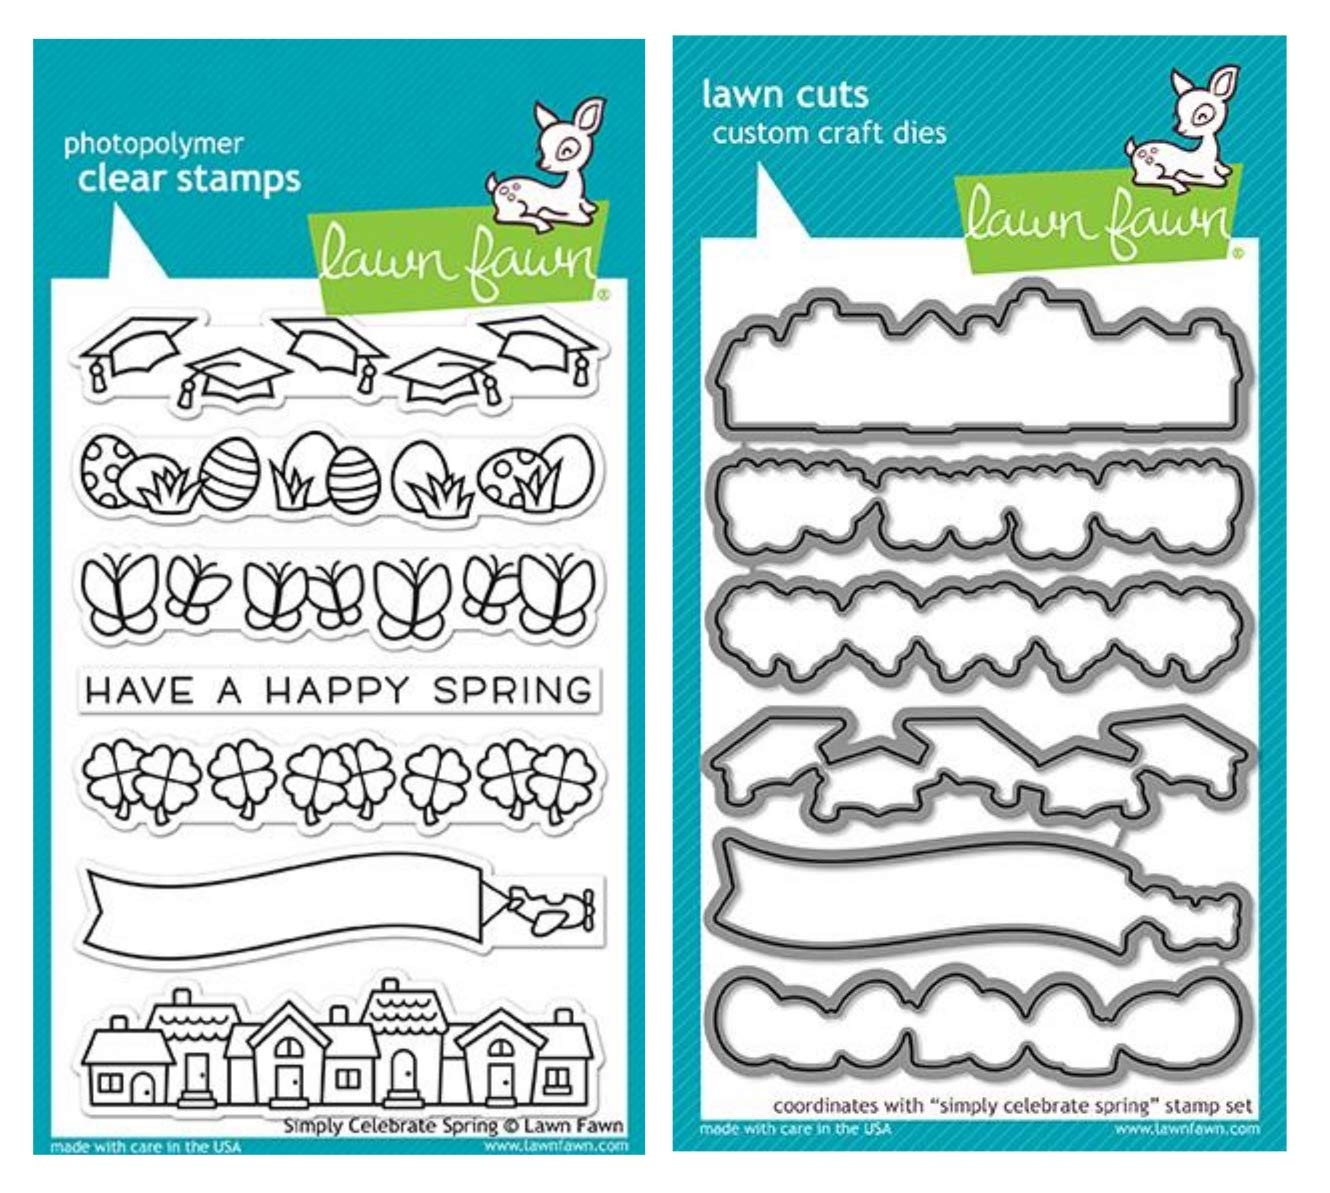 Lawn Fawn Simply Celebrate Spring 4''x6'' Clear Stamps and Matching Lawn Cuts Die Set (LF1896, LF1897), Bundle of Two Items